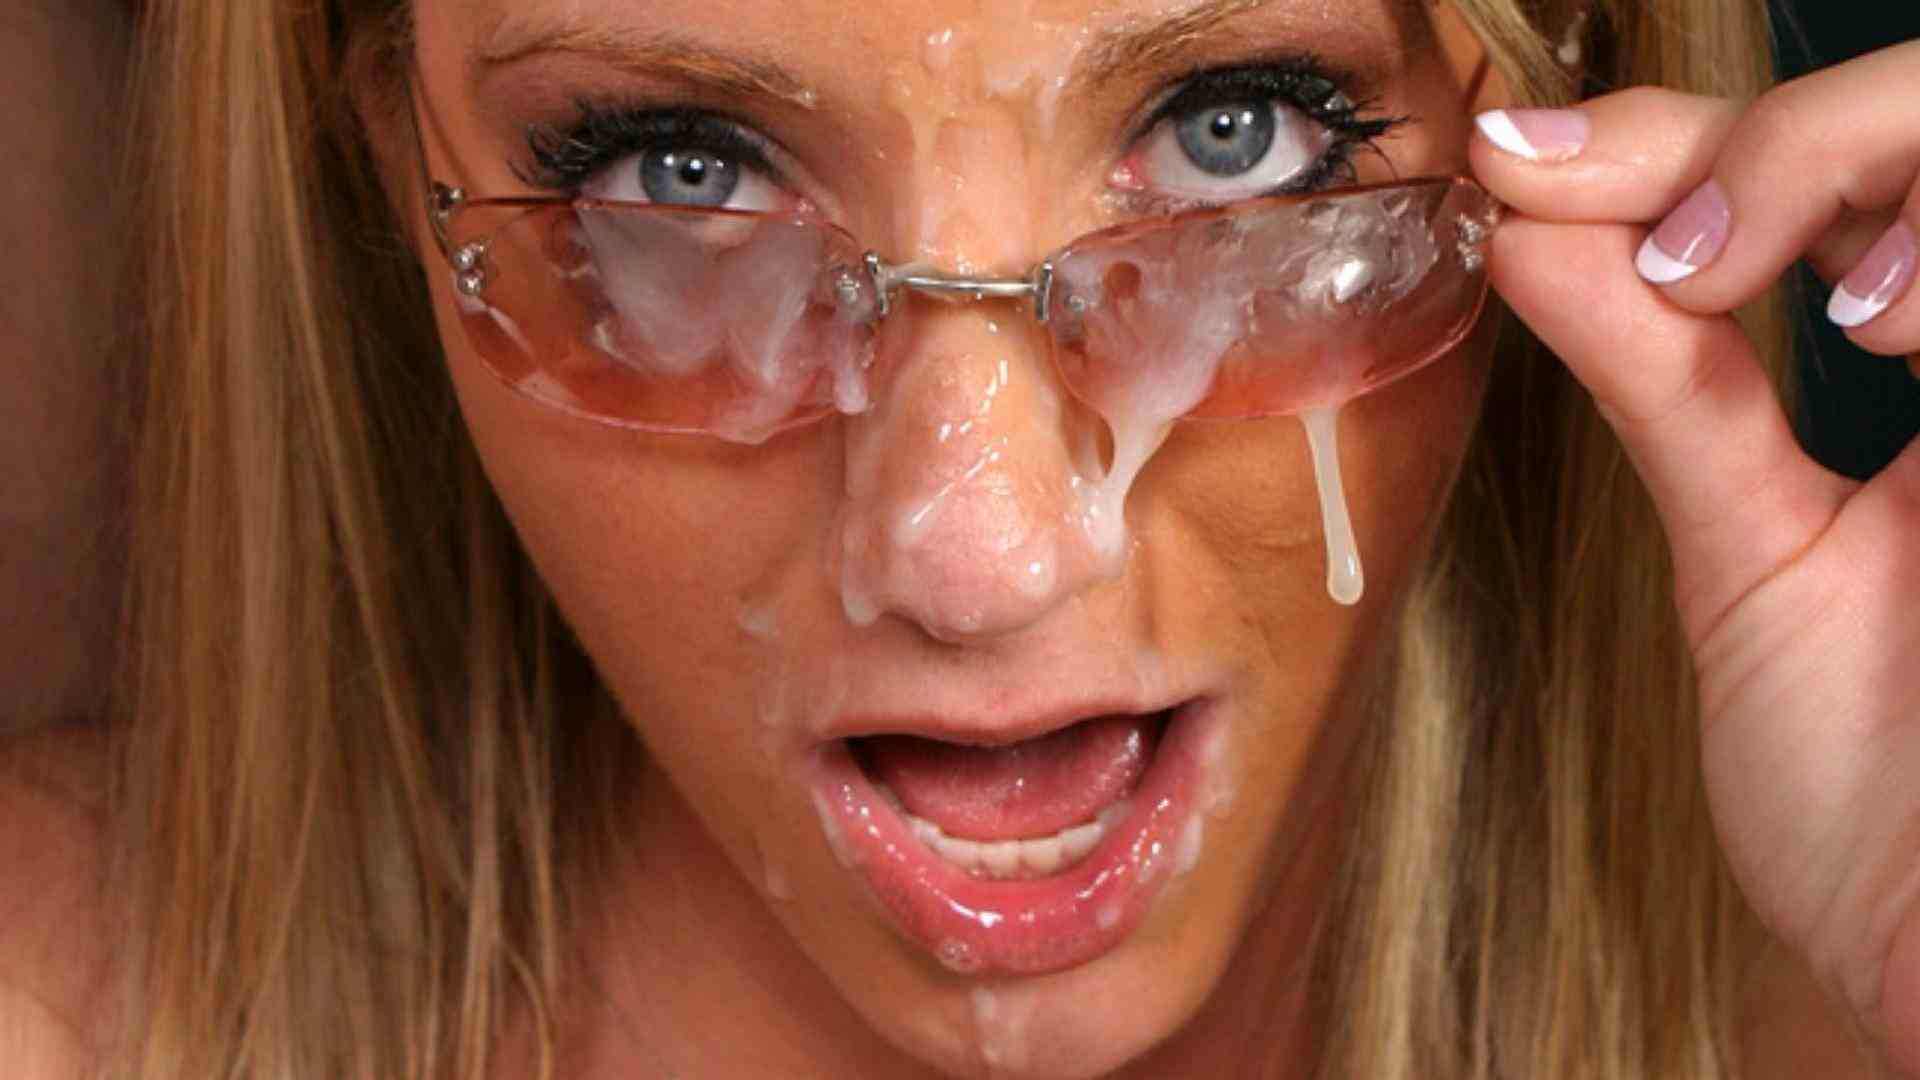 Teen girl glasses facial